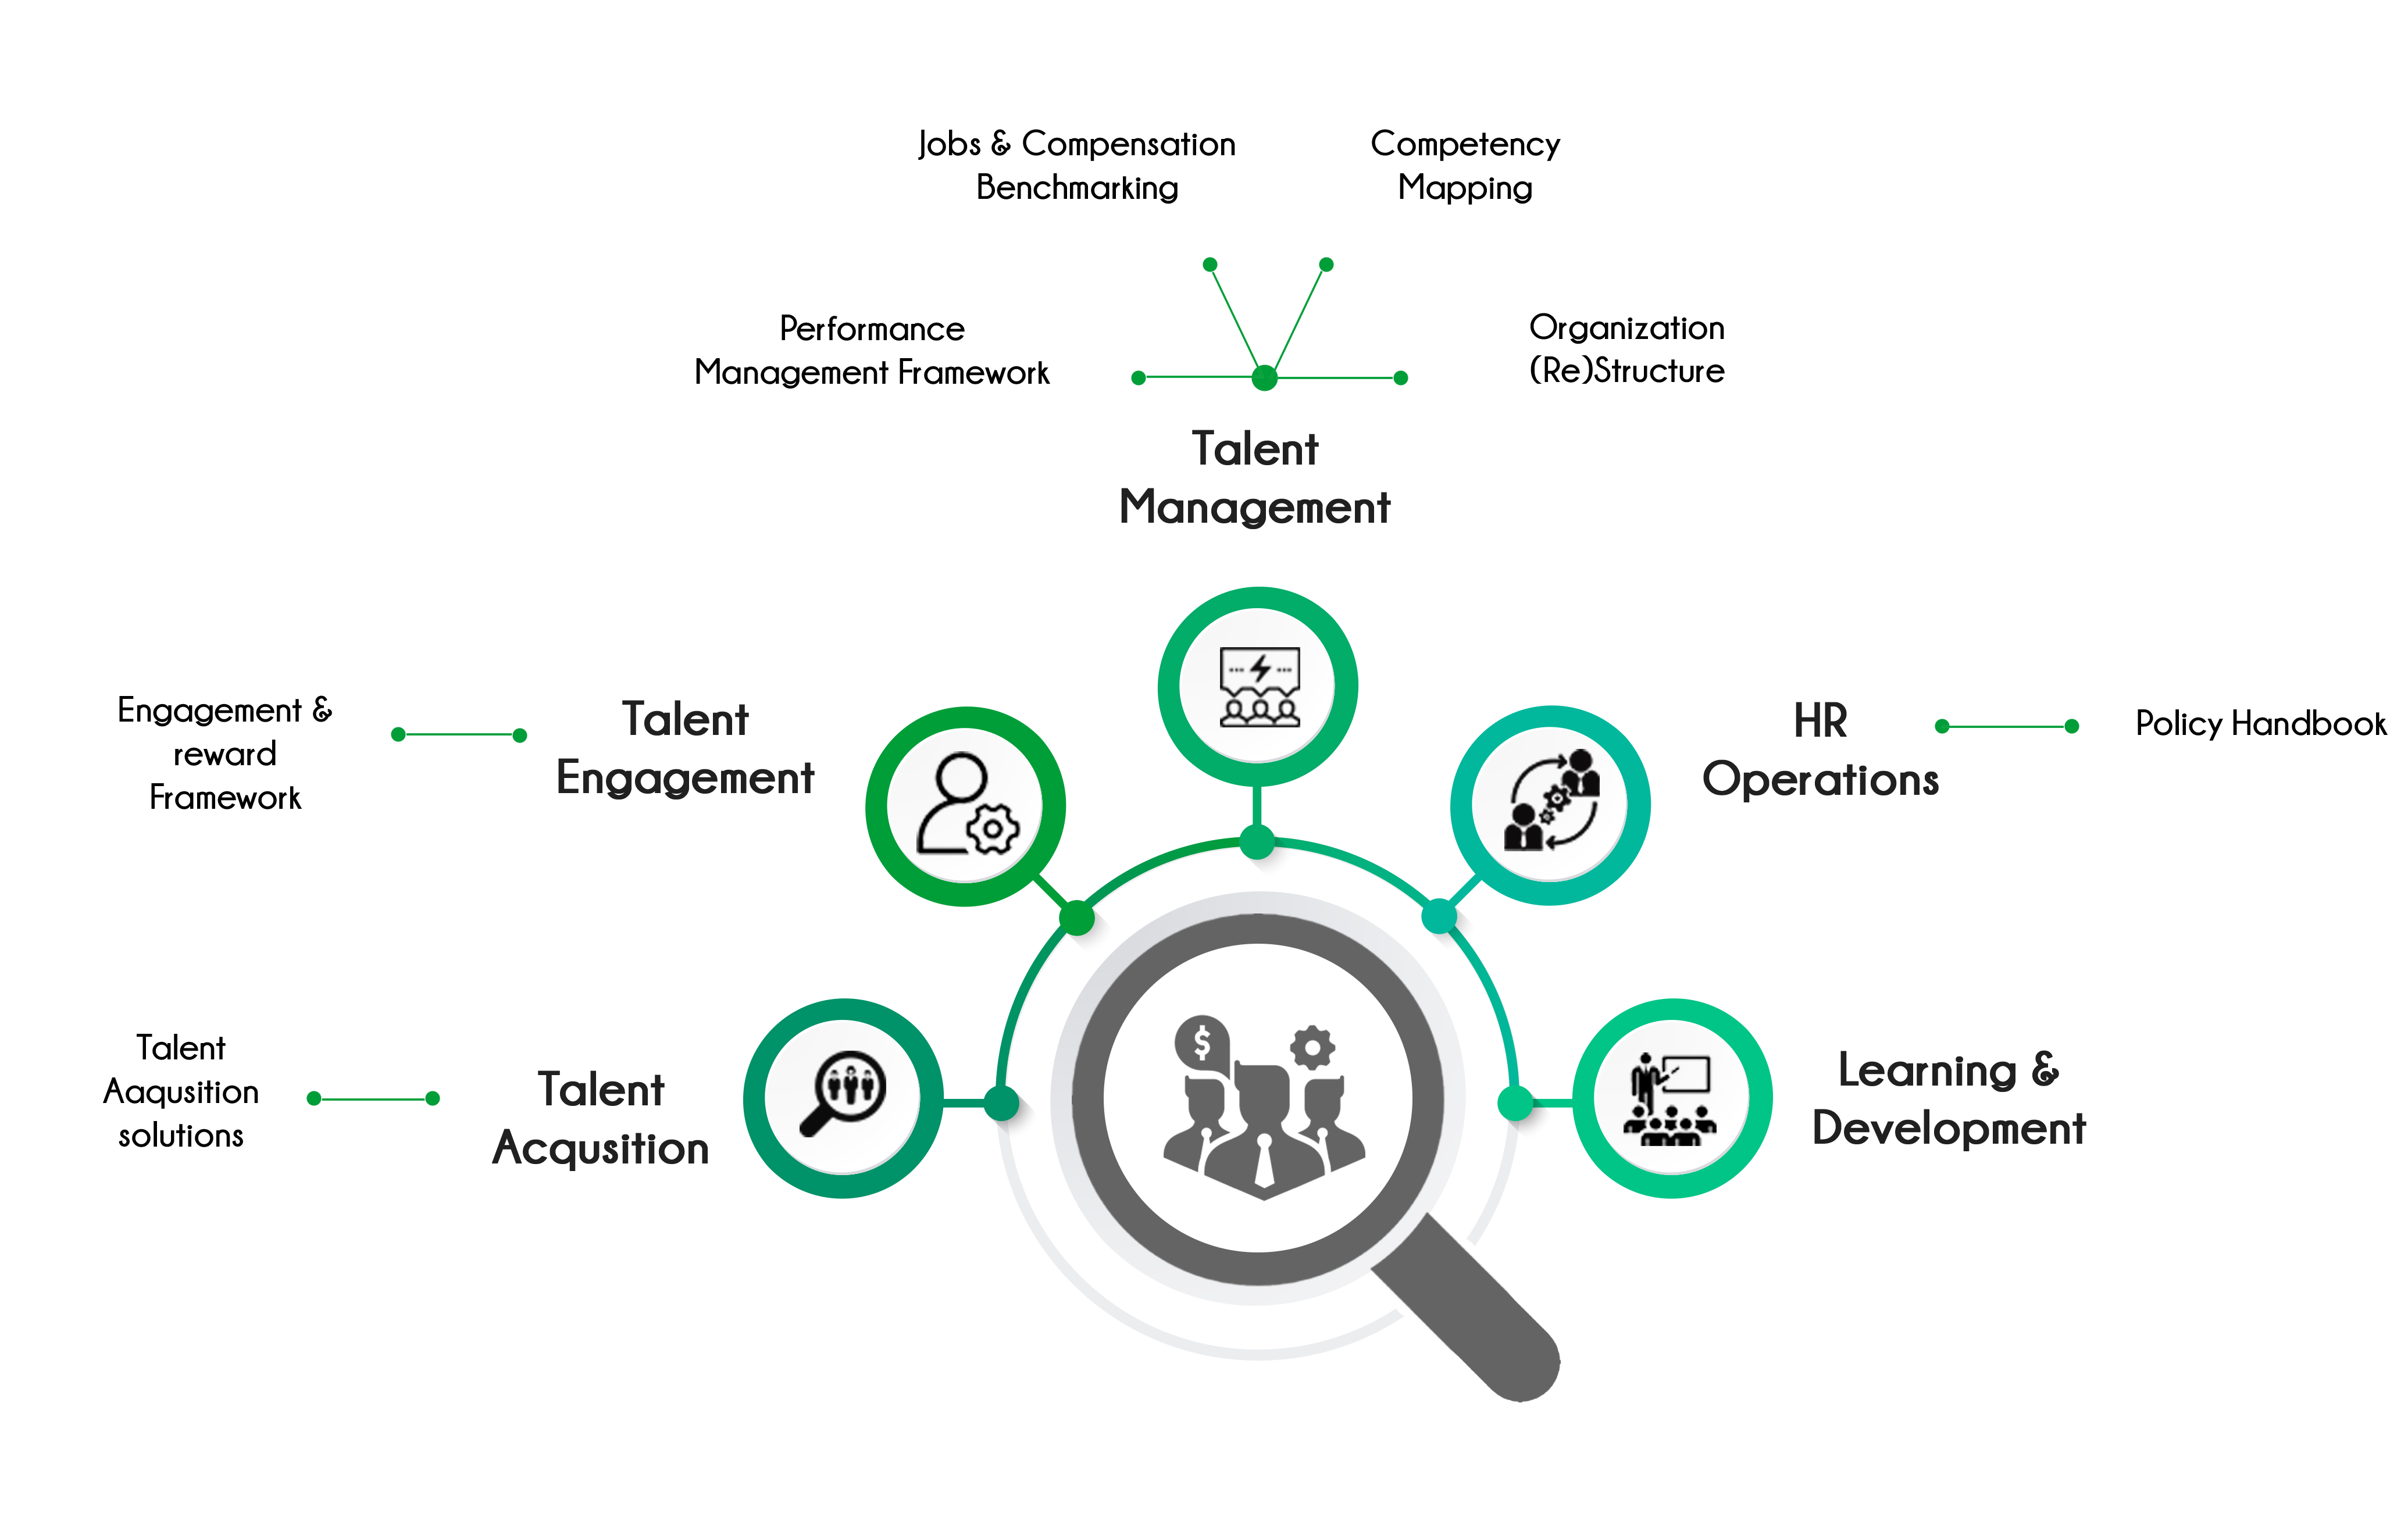 Steps involved in Talent Acquisition